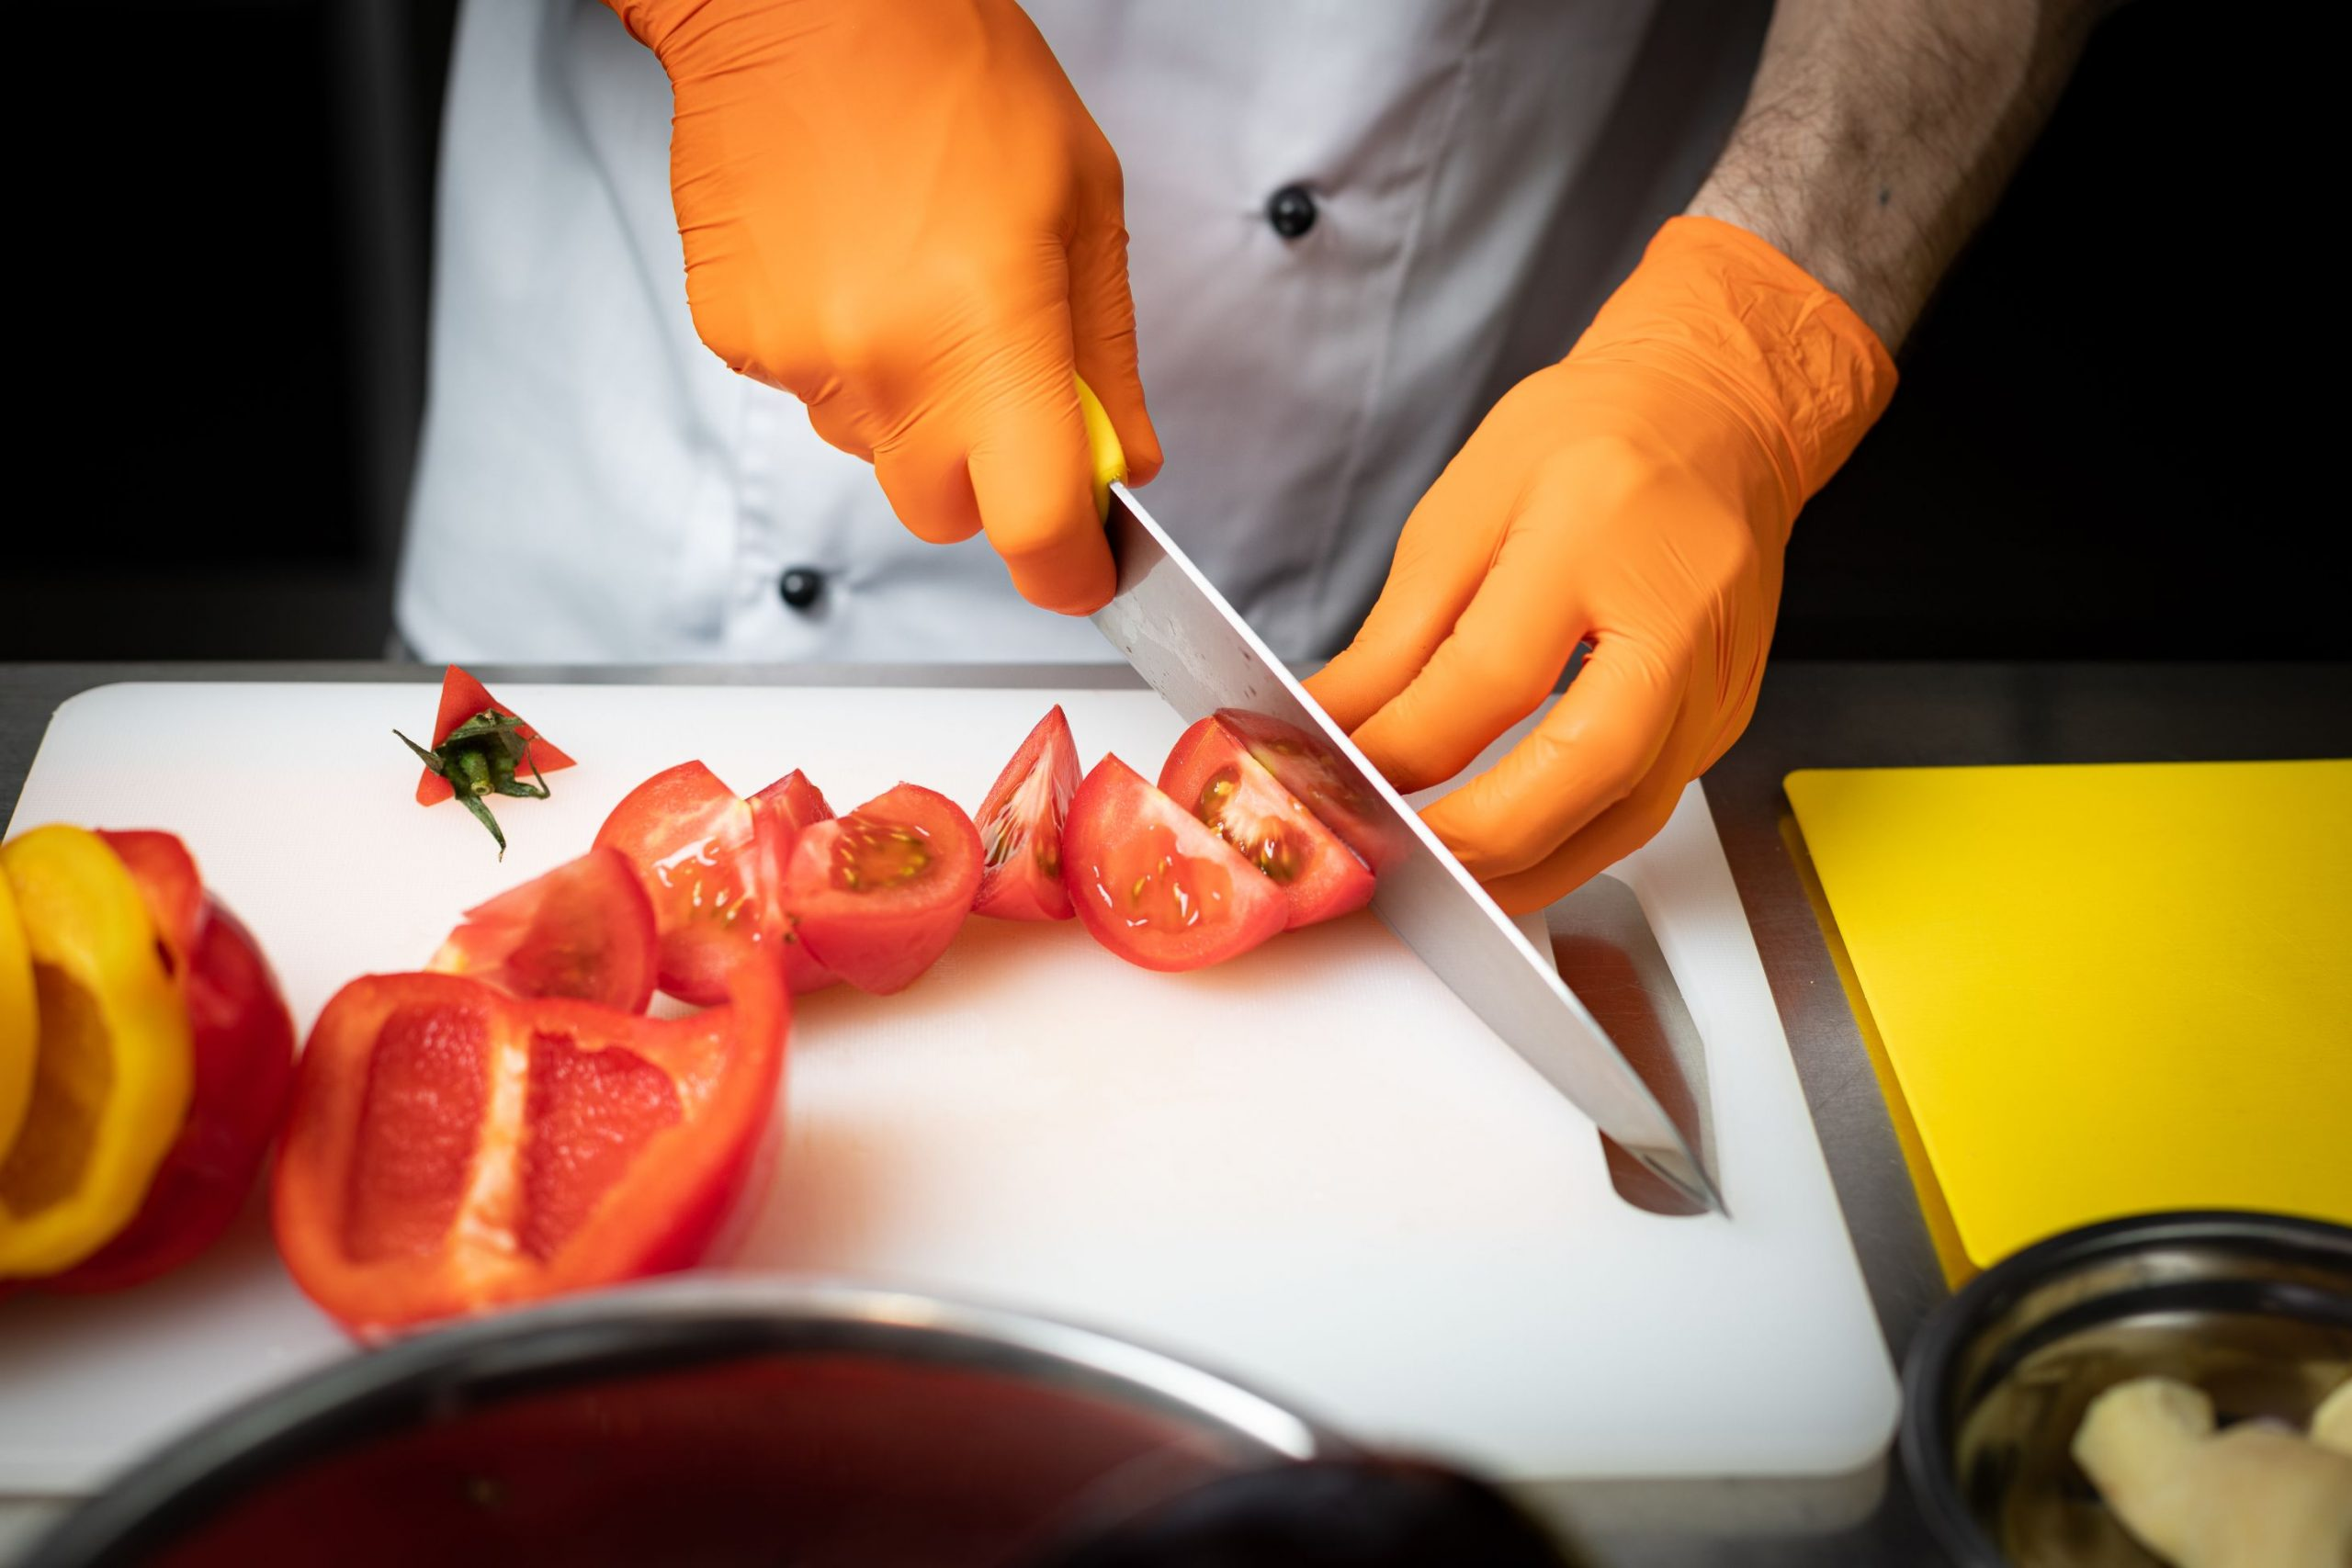 Chef cuts tomatoes | Features image for HLTSS ICFH66 FOR FOOD HANDLING.